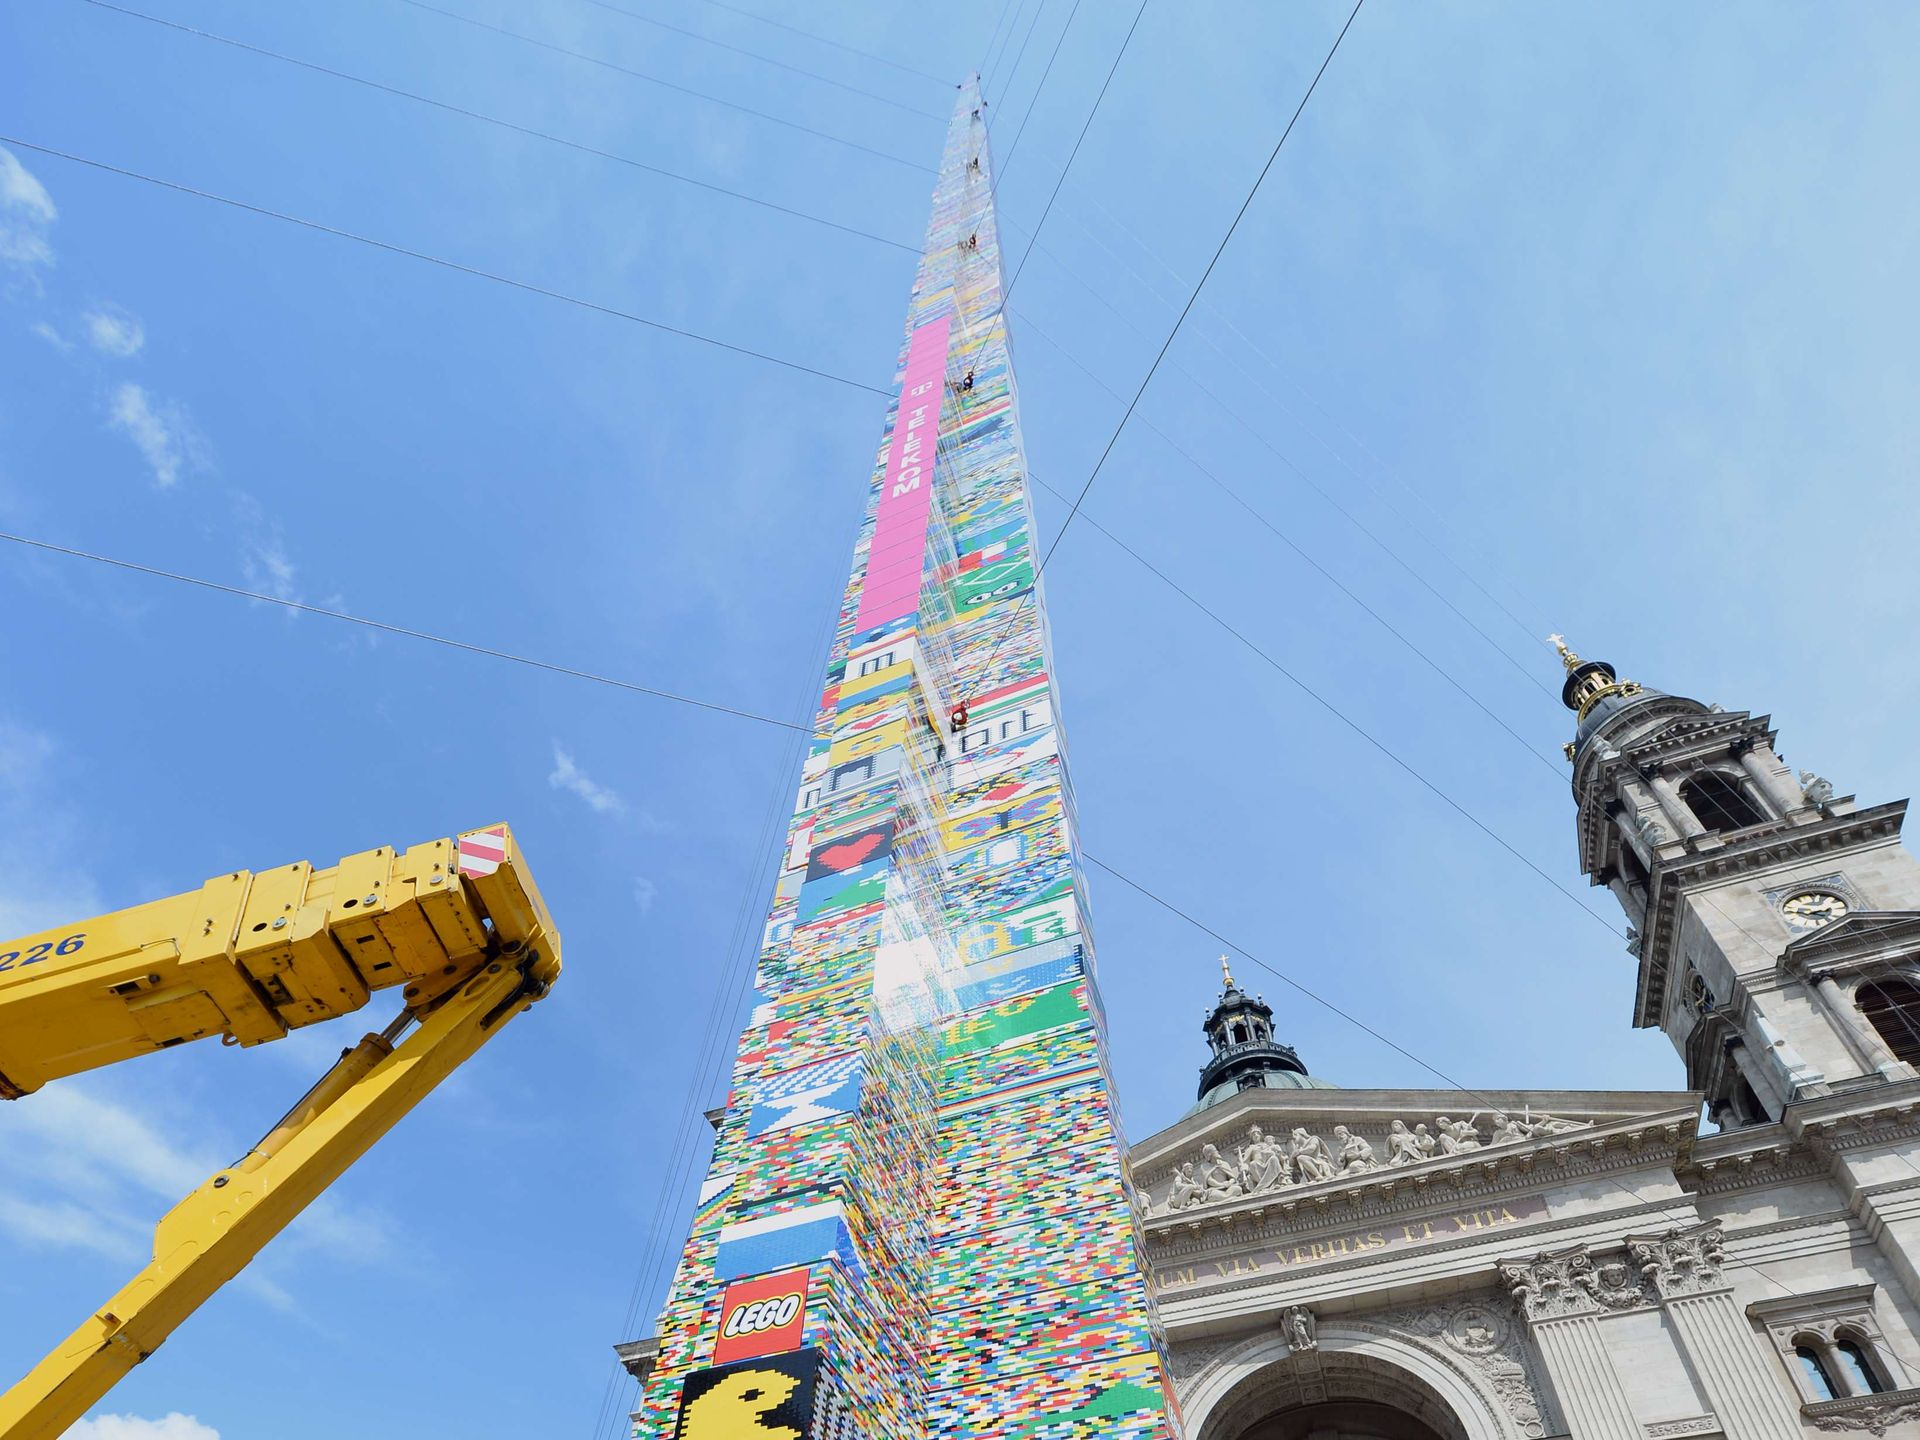 LEGO tower in Hungary is tallest in the world!